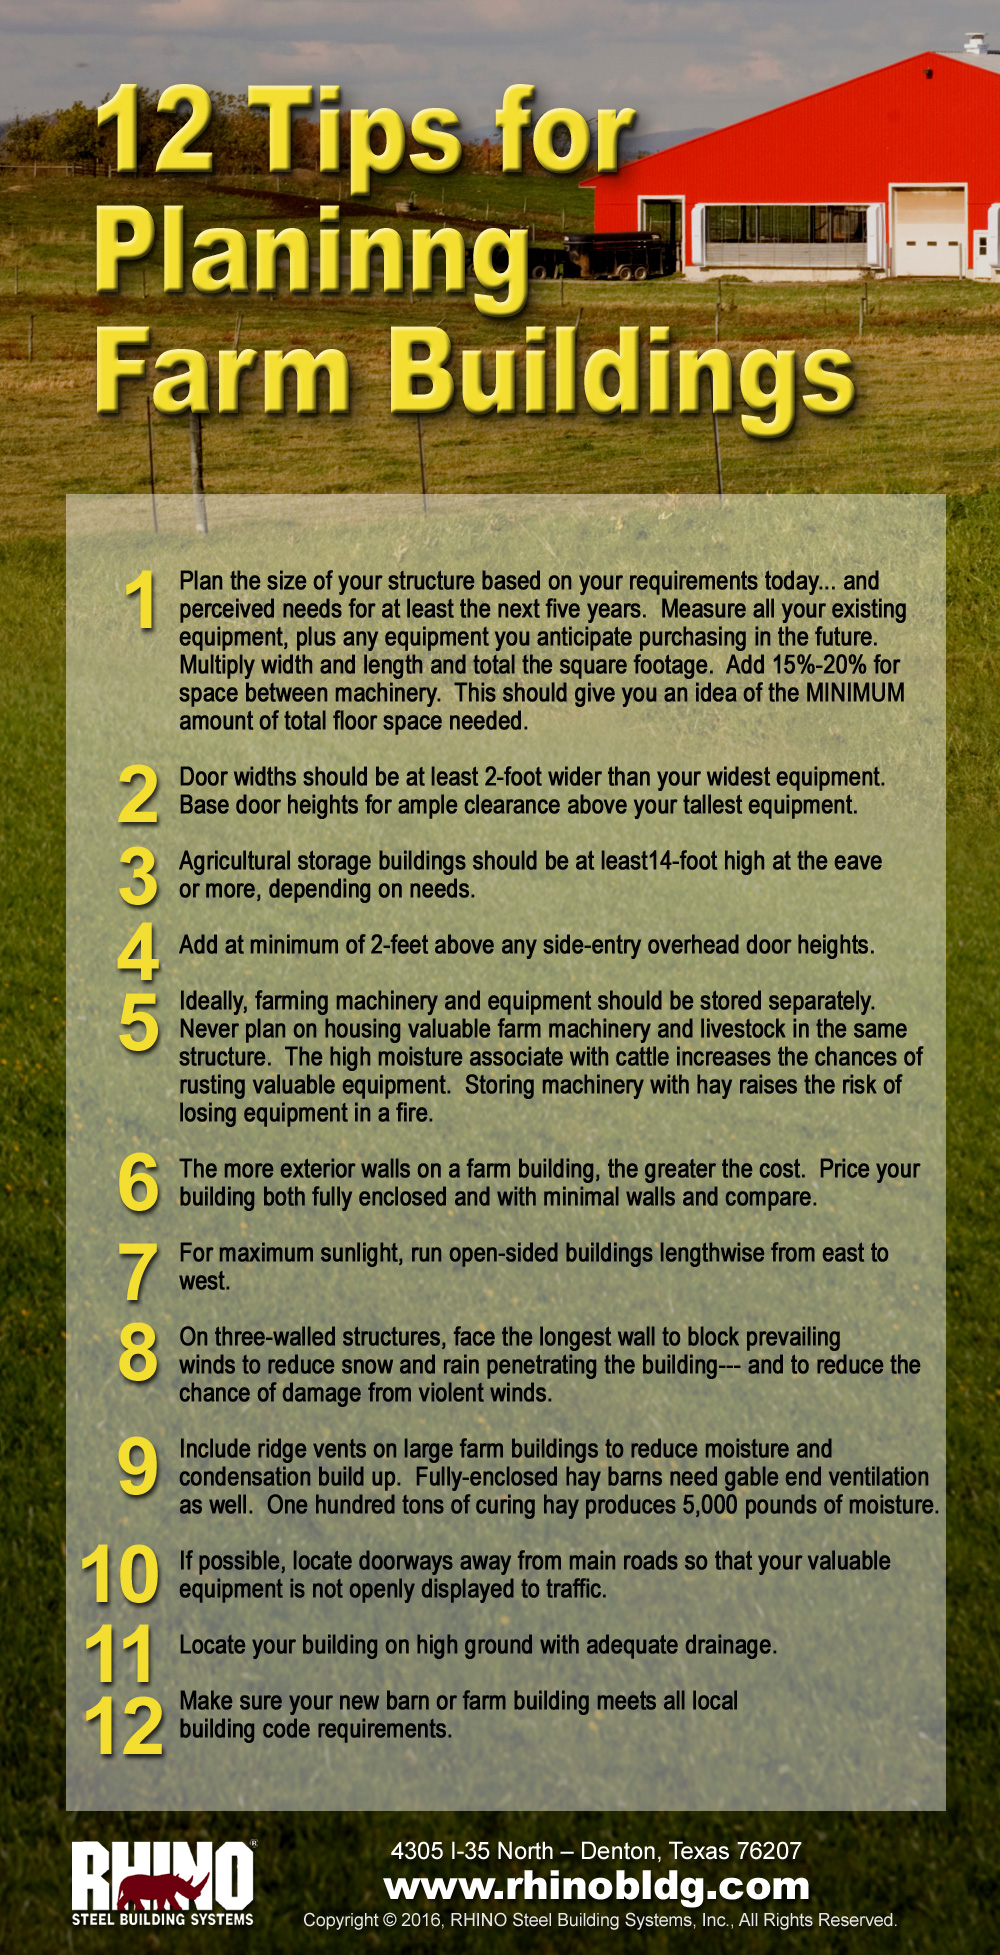 RHINO infographic with 12 Tips for Planning Farm Buildings.